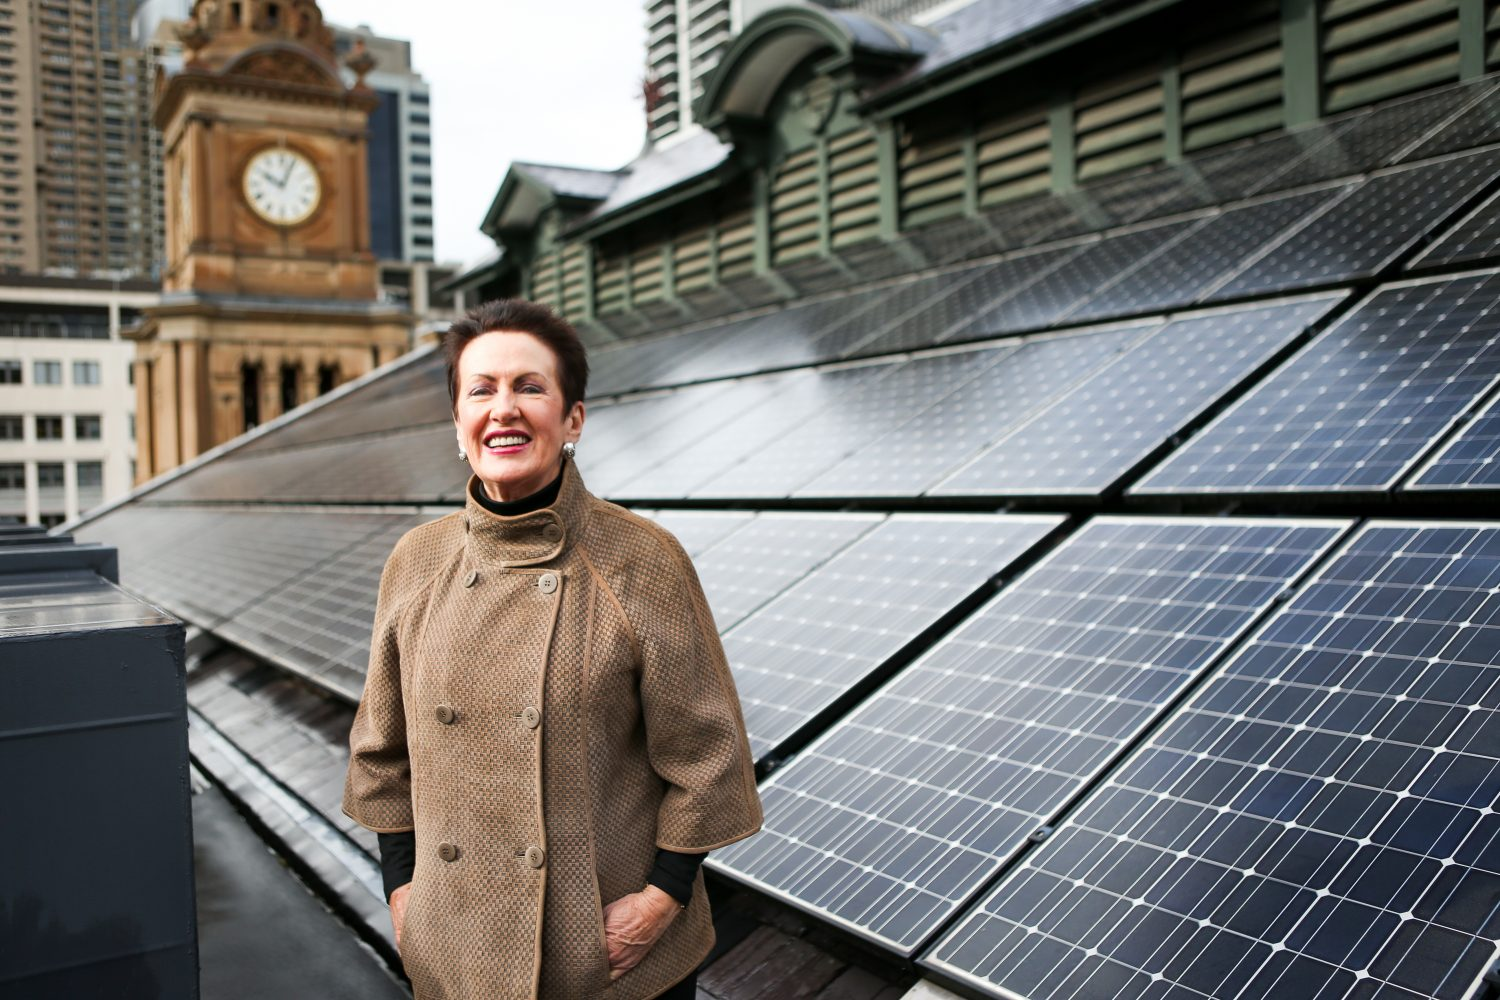 Lord Mayor Clover Moore at Sydney Town Hall with solar panels